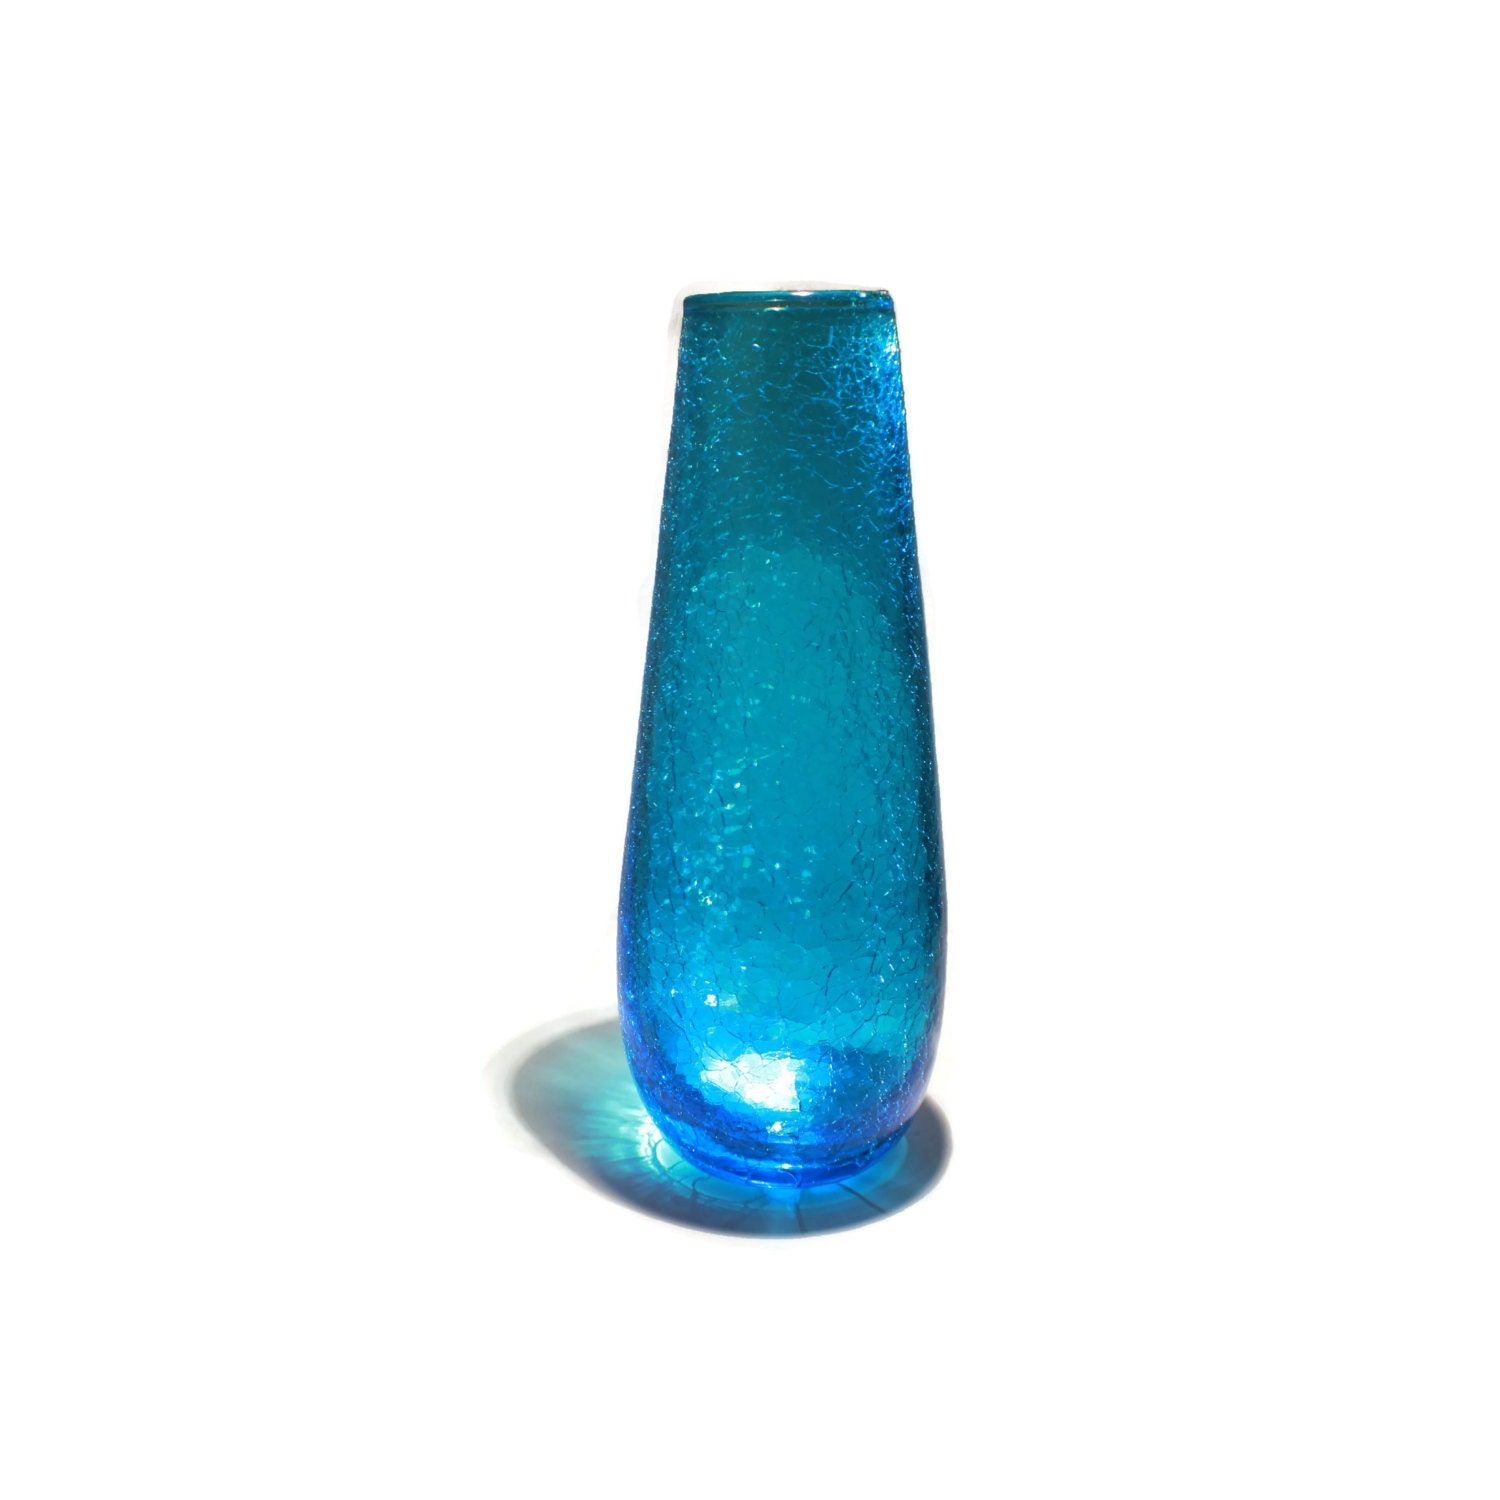 Retro Art Glass Glass Vase Retro Art